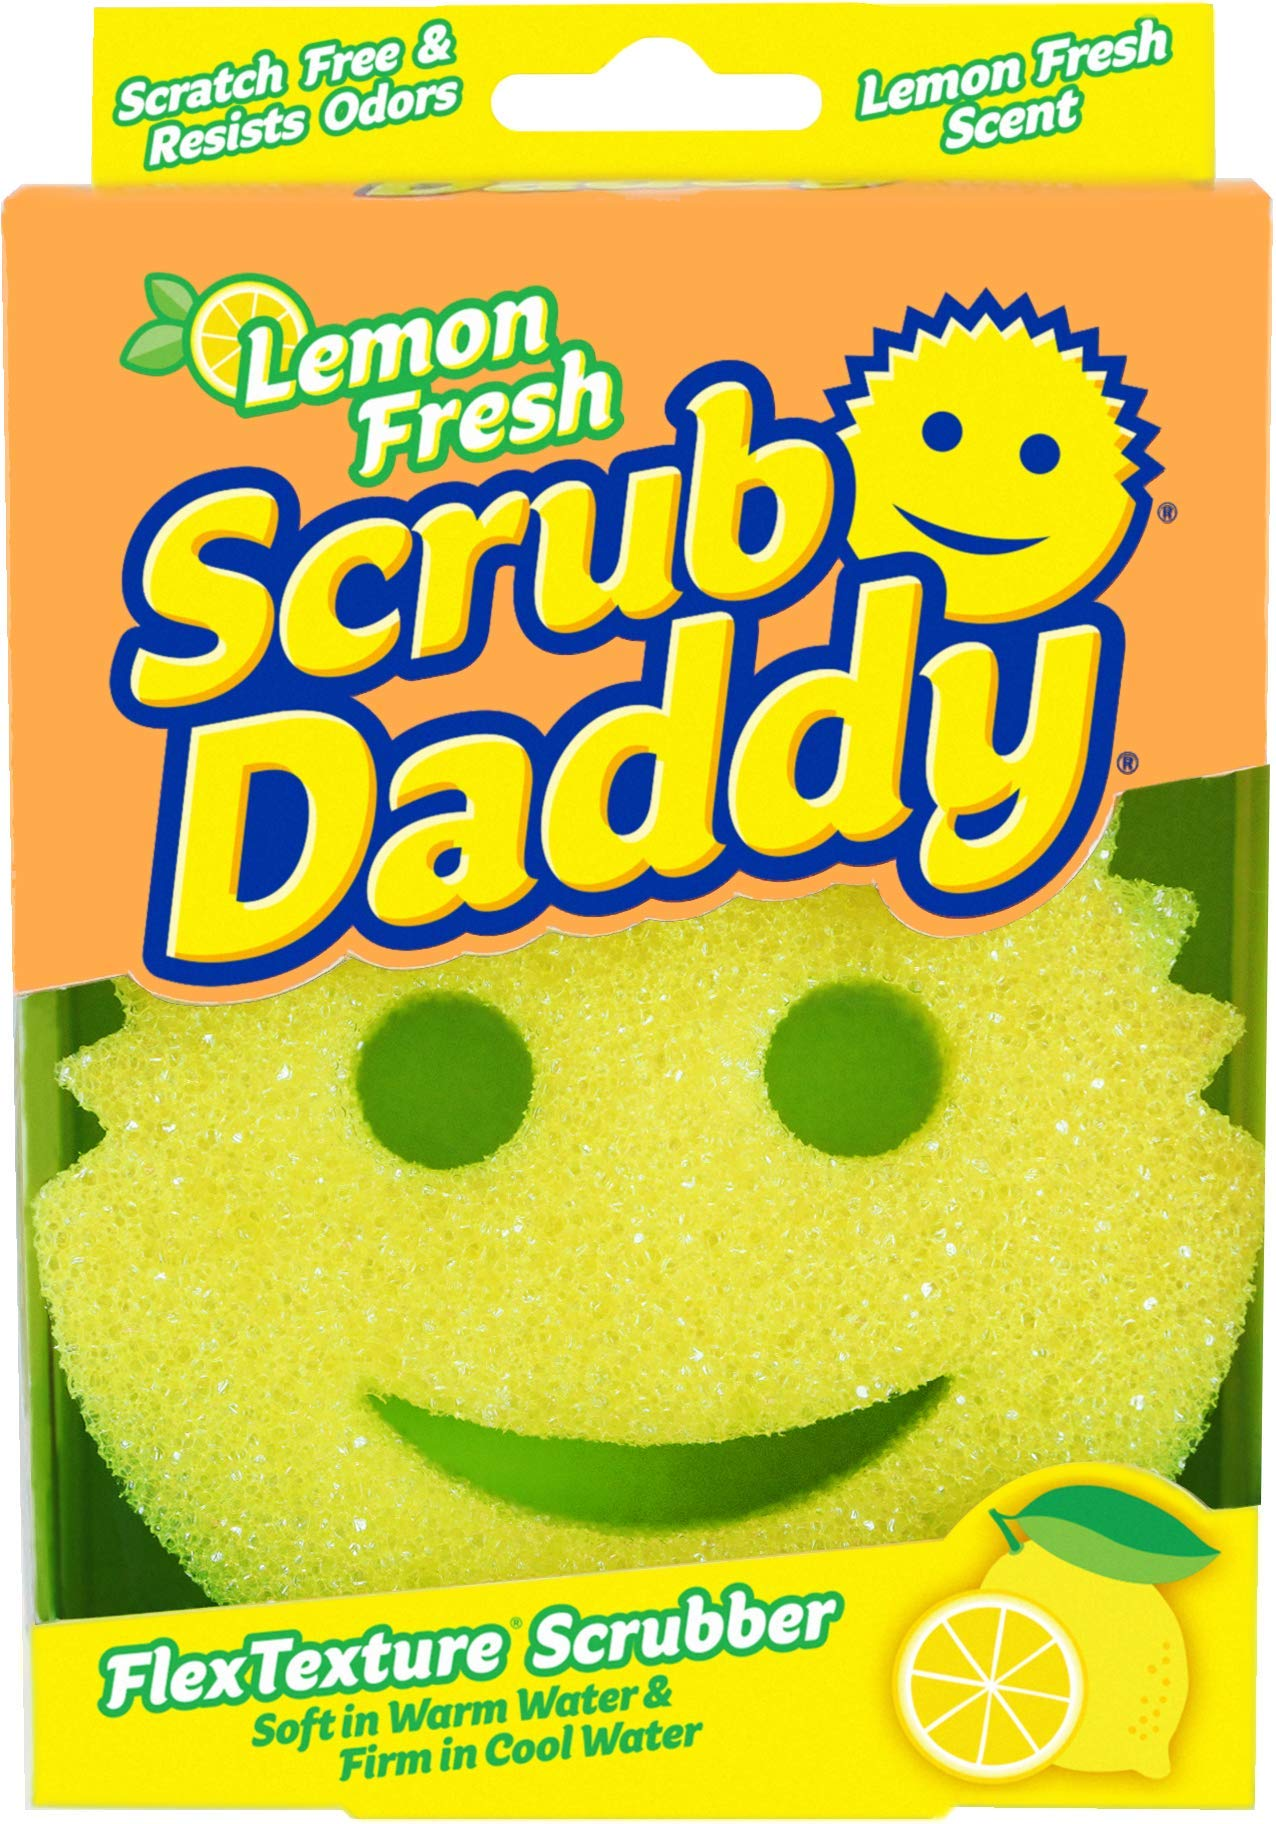 Scrub Daddy Lemon Fresh Scrubber - FlexTexture Sponge, Soft in Warm Water, Firm in Cold, Deep Cleaning, Dishwasher Safe, Multiuse, Scratch Free, Odor Resistant, Functional, Ergonomic, 1pk